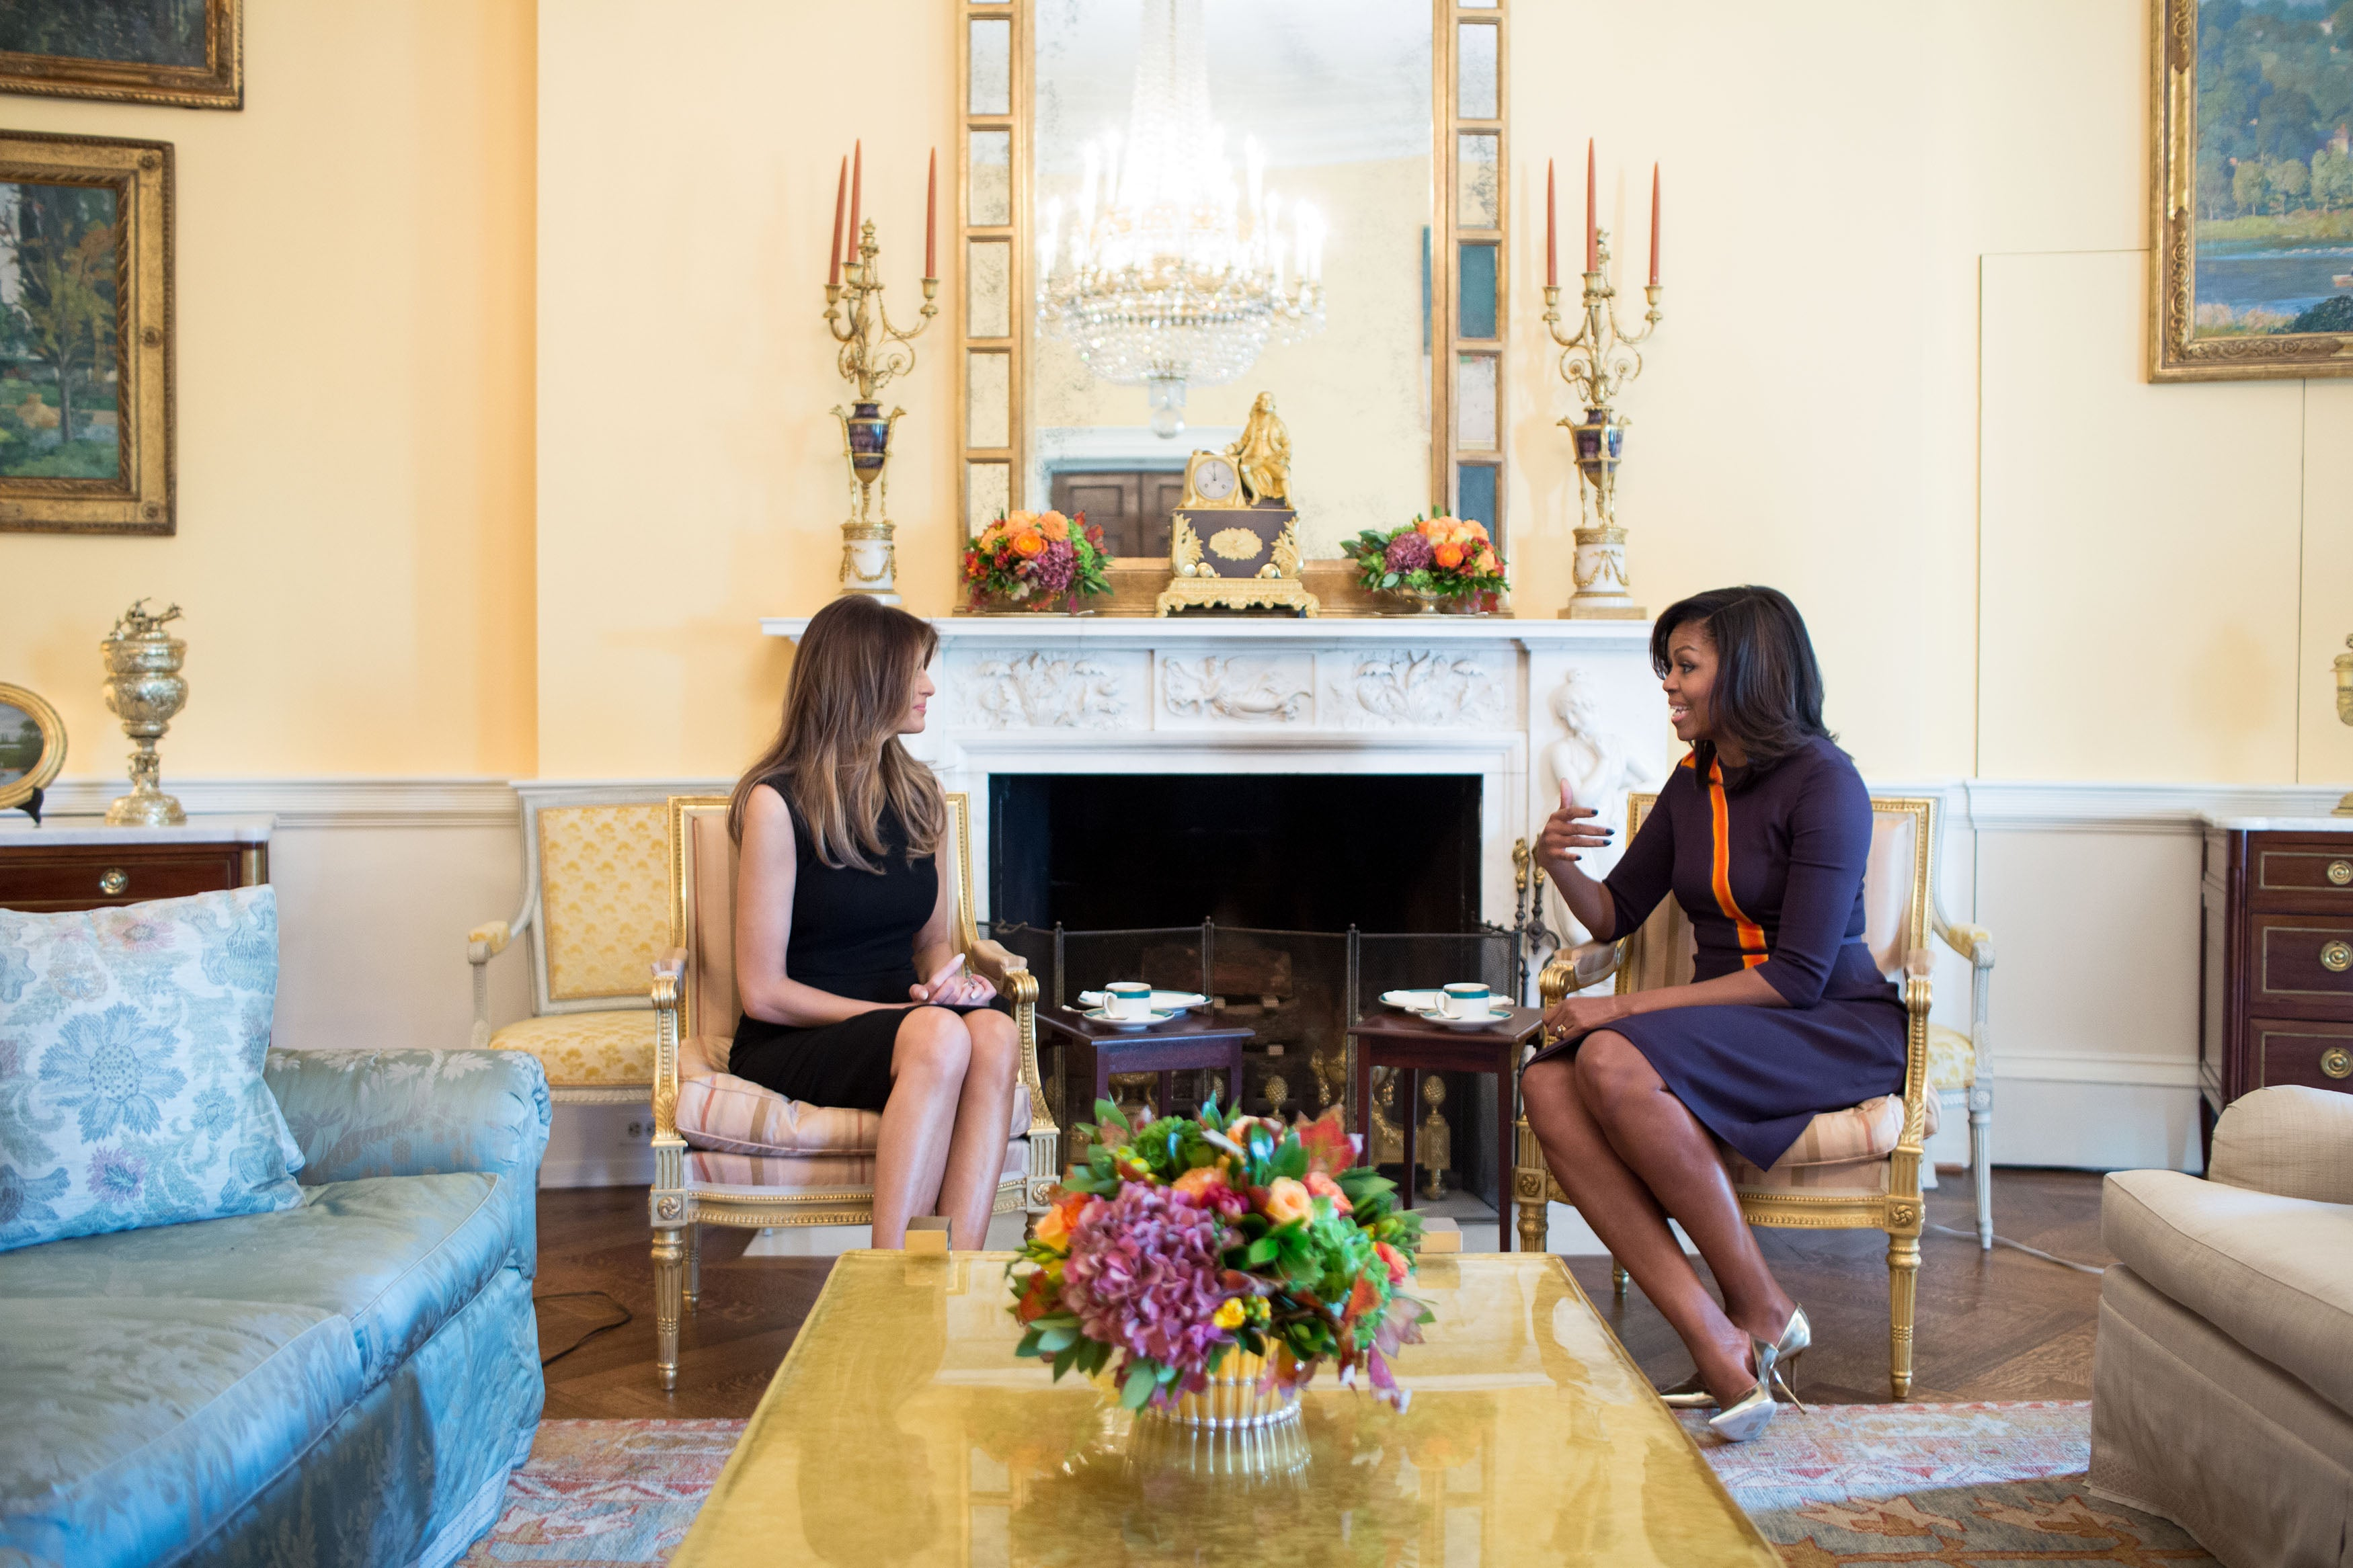 melania trump wears all black while meeting with michelle obama at